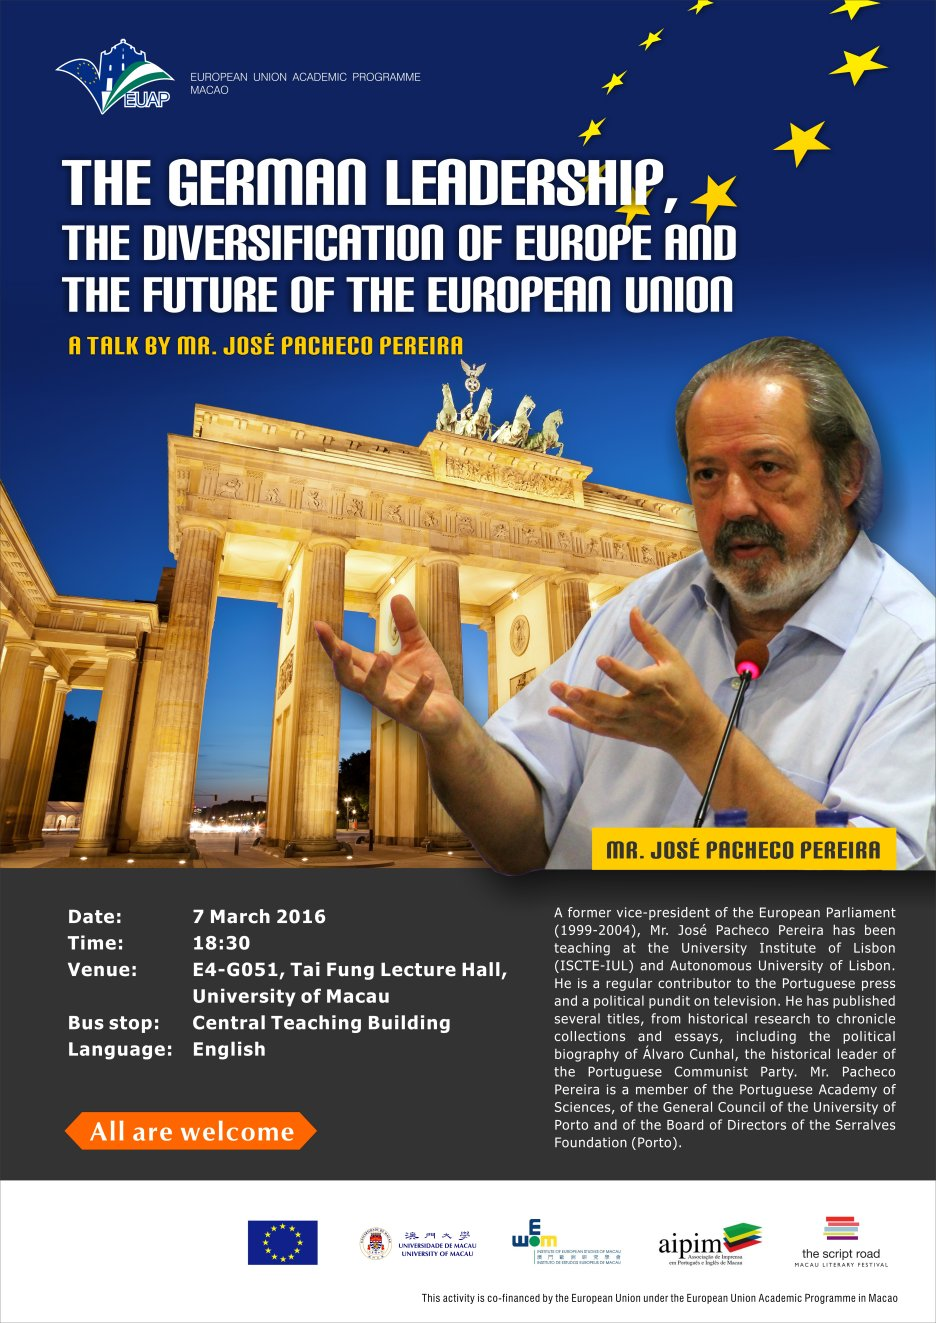 The lecture on 'The German Leadership, the Diversification of Europe, and the Future of the European Union'